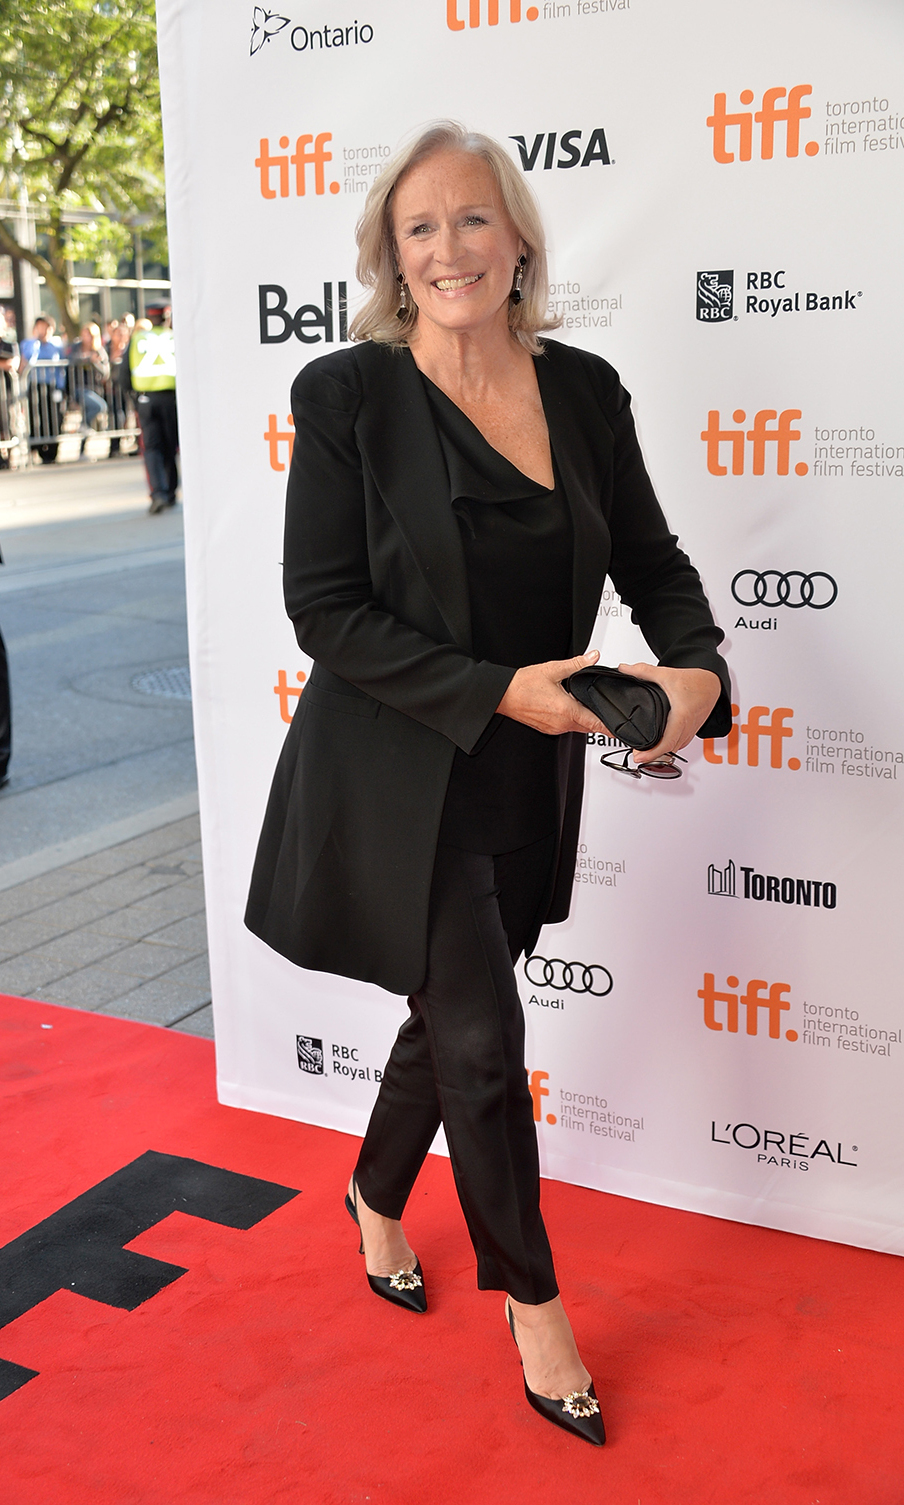 Actress Glenn Close at the The Big Chill premiere at the 2013 Toronto International Film Festival.